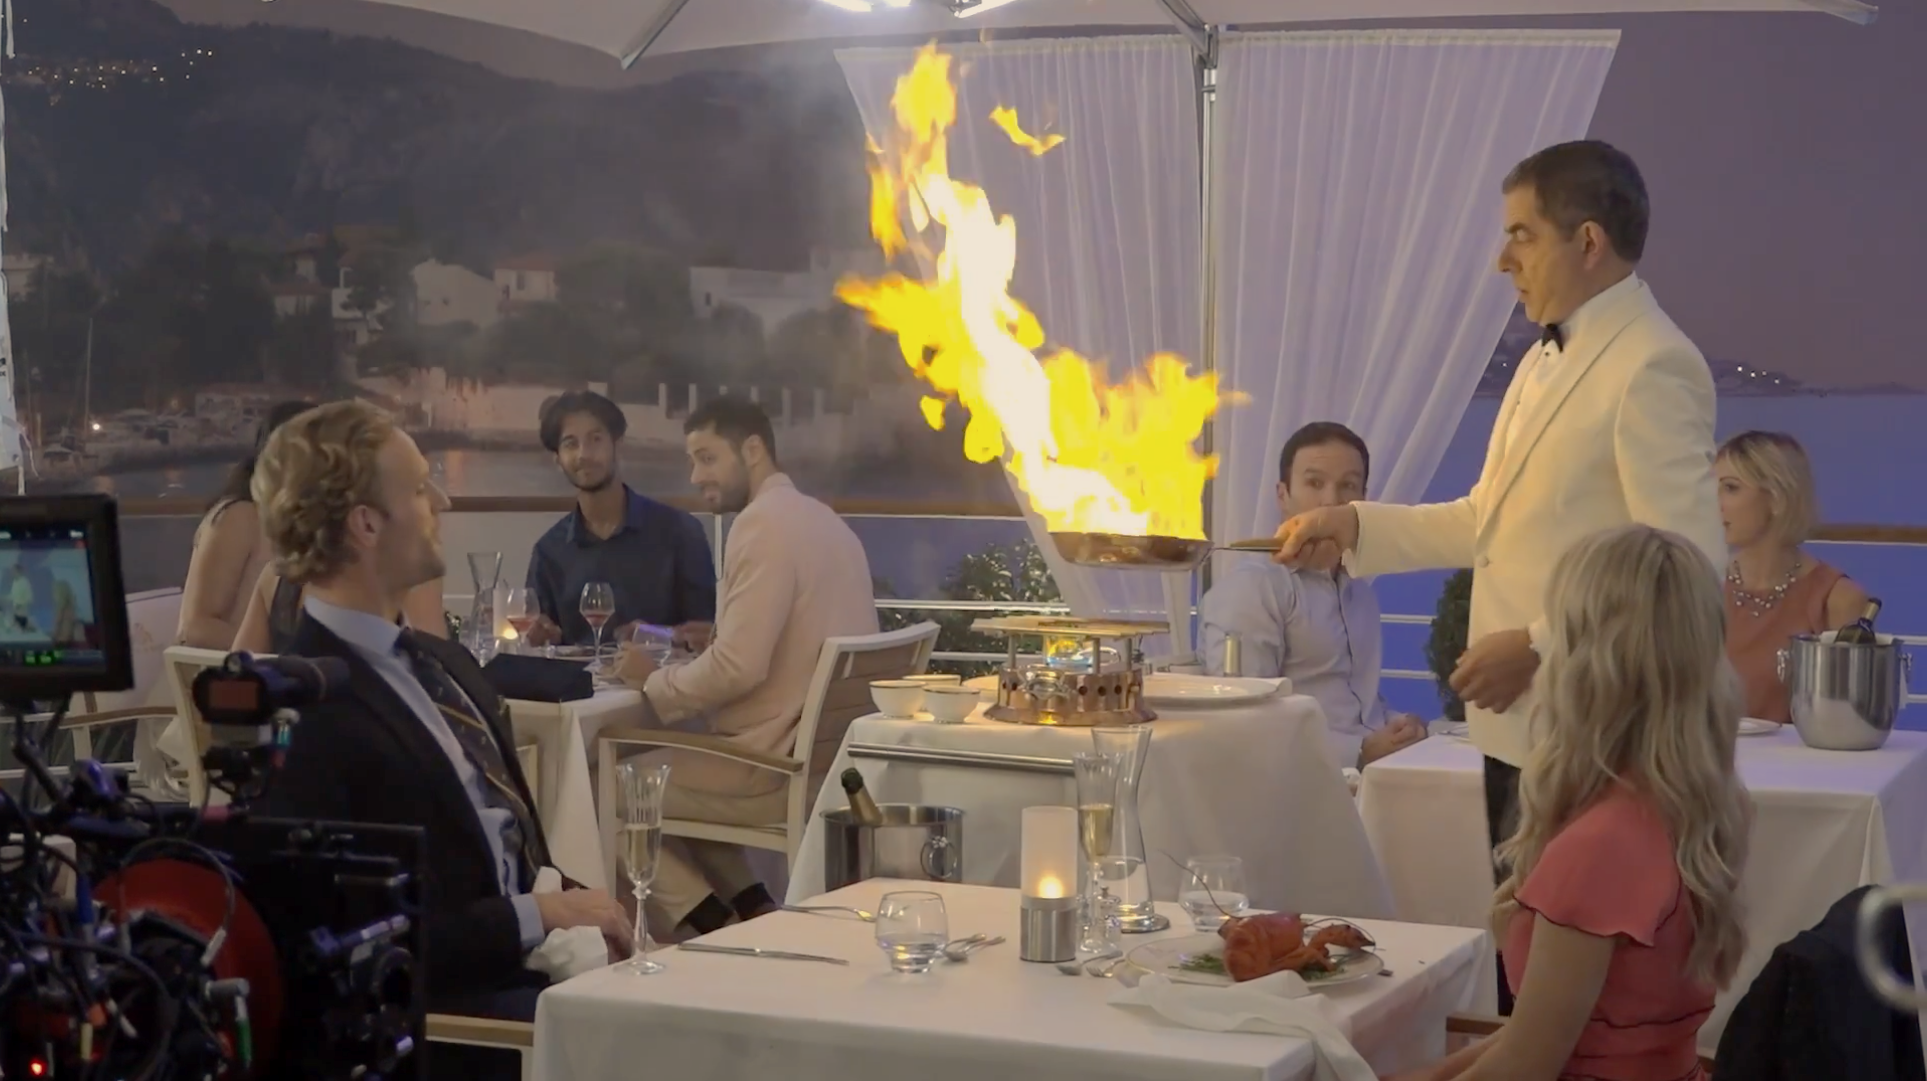 Johnny English Strikes Again. French Hotel Restaurant film set which Johnny sets fire to